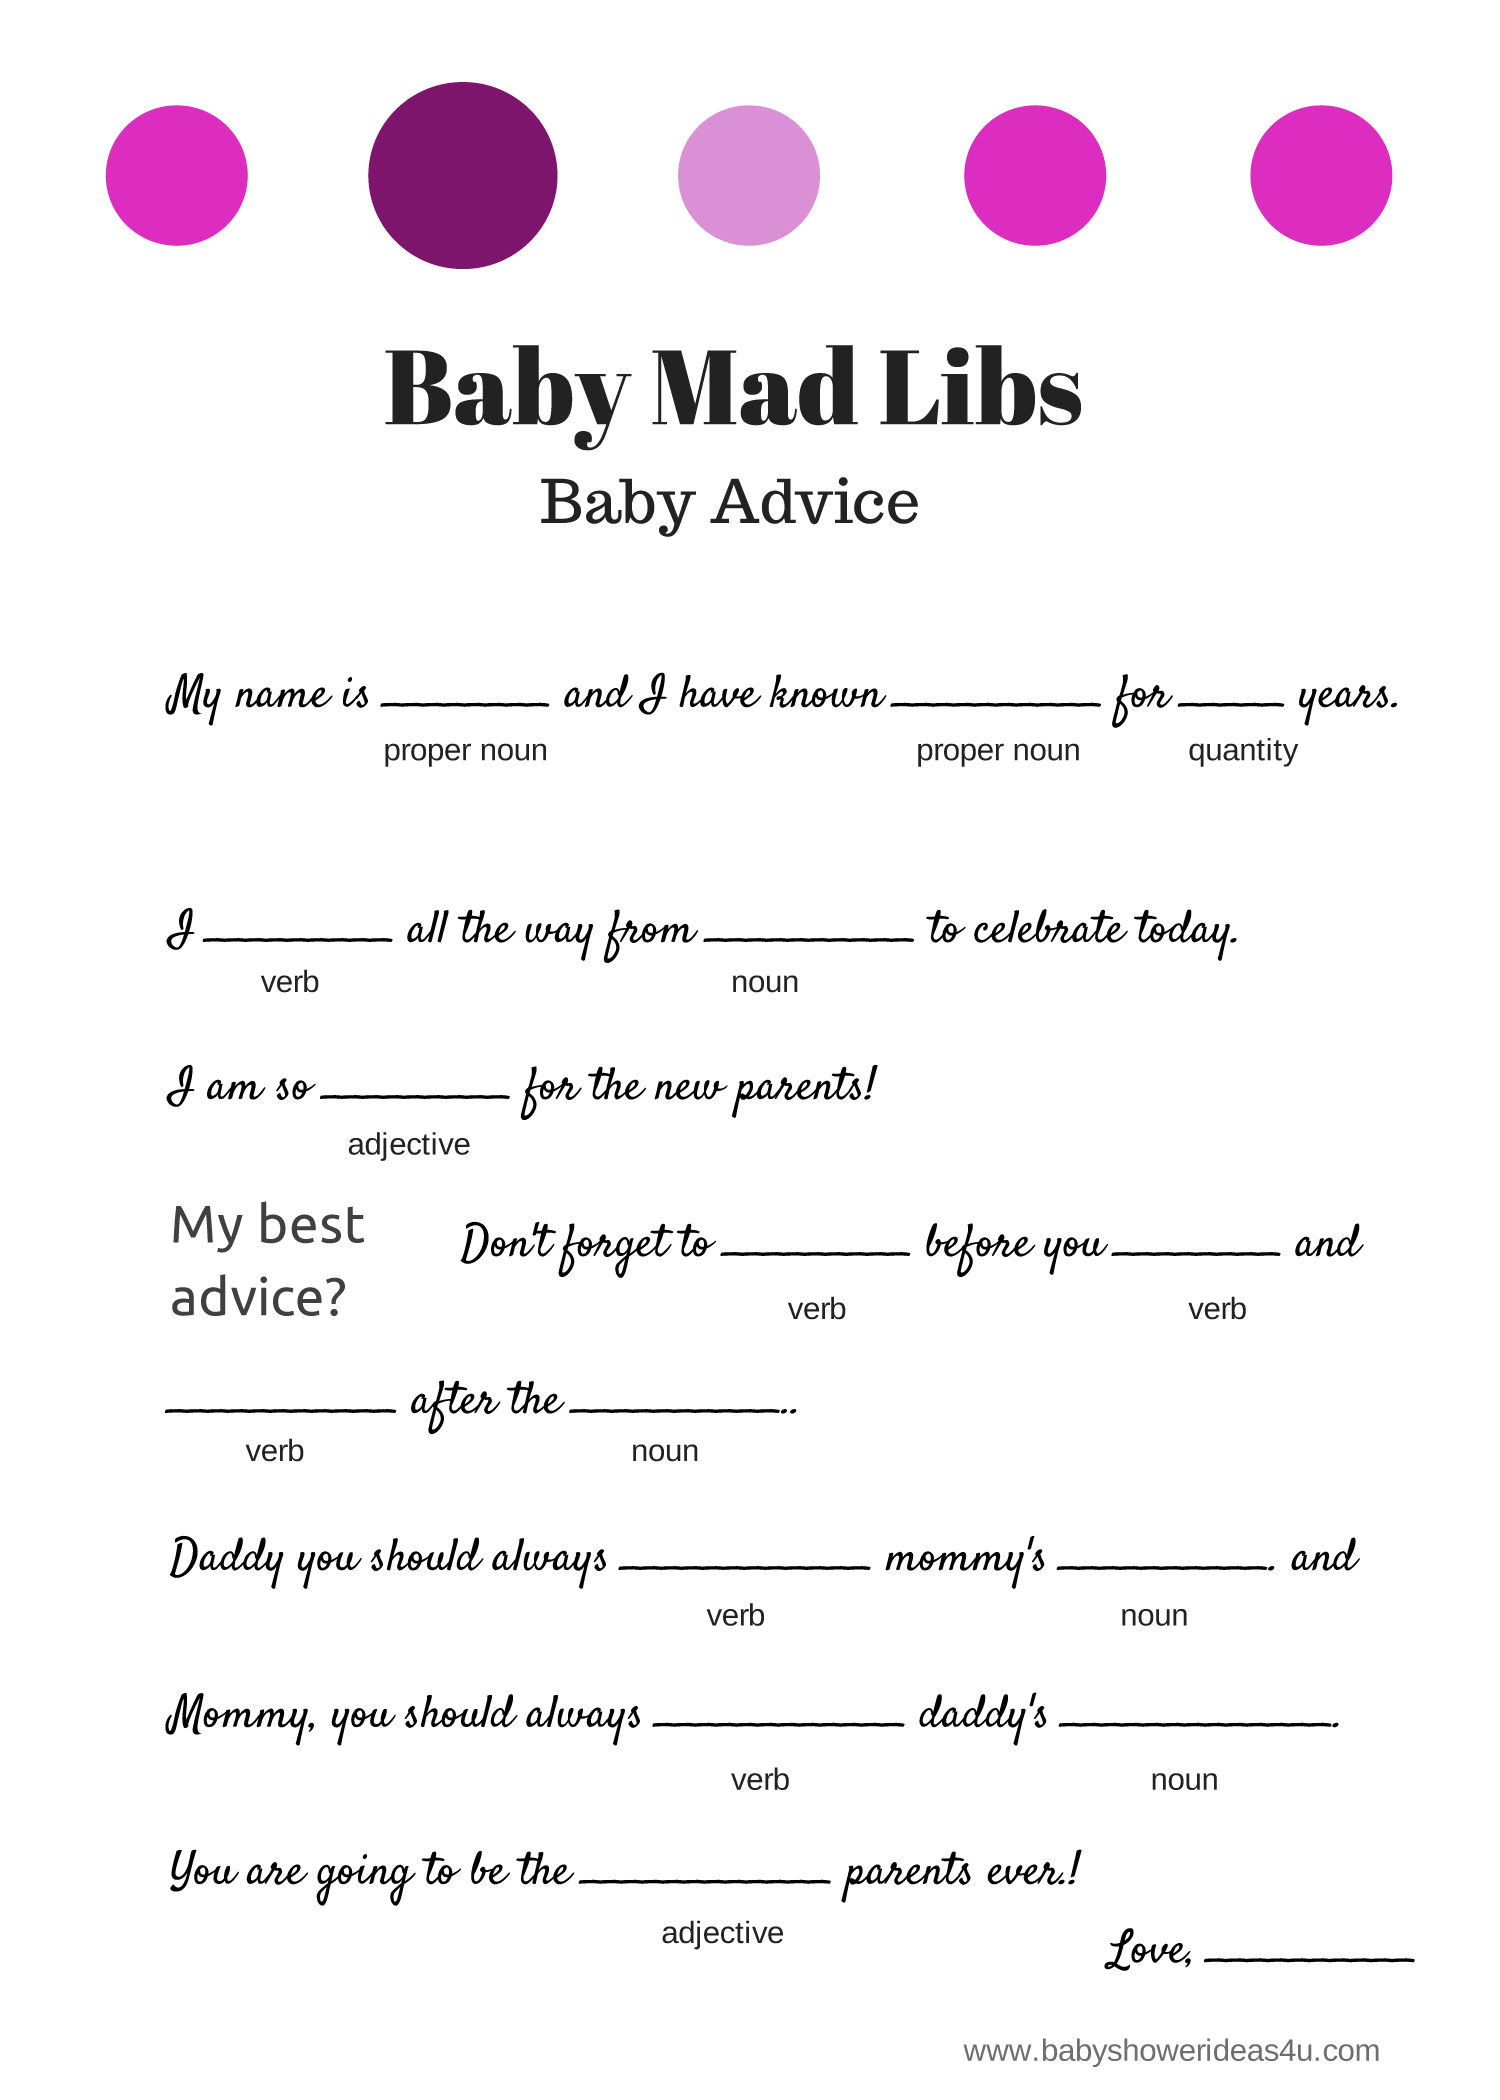 baby mad libs game baby advice baby shower ideas themes games